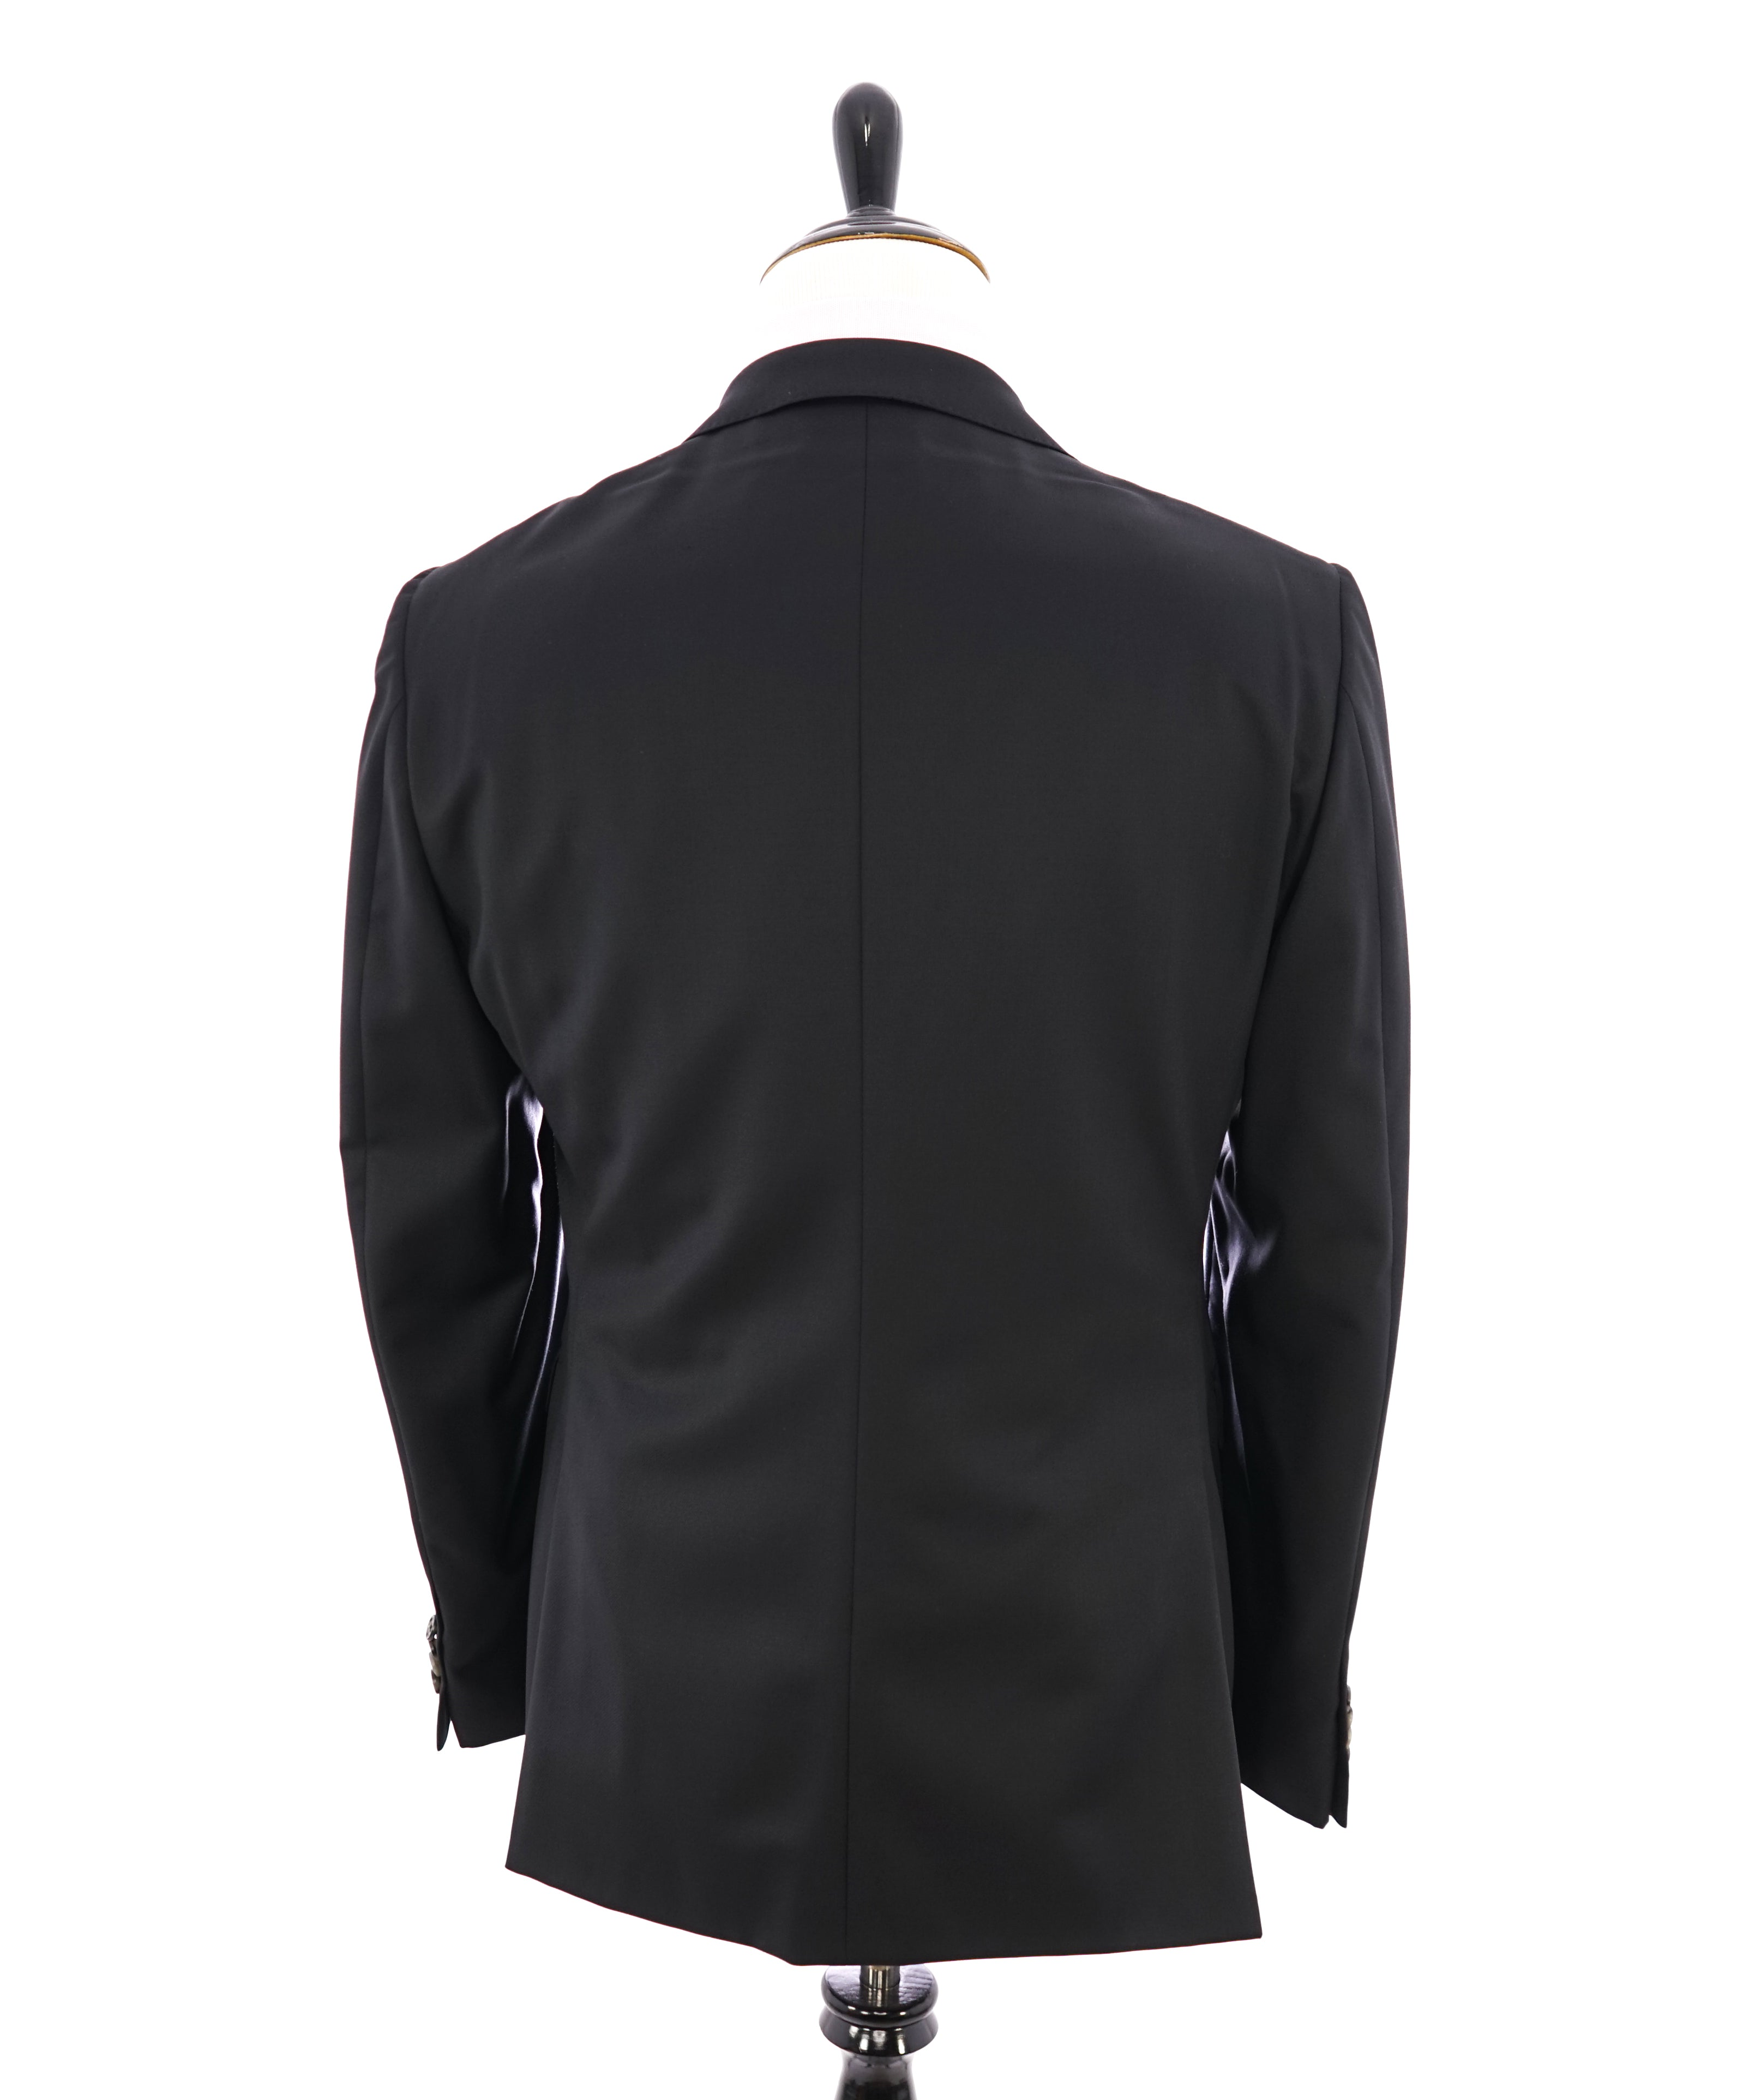 Z ZEGNA - Solid Black Fabric LOGO BUTTONS Drop 8 Wool Suit - 44R